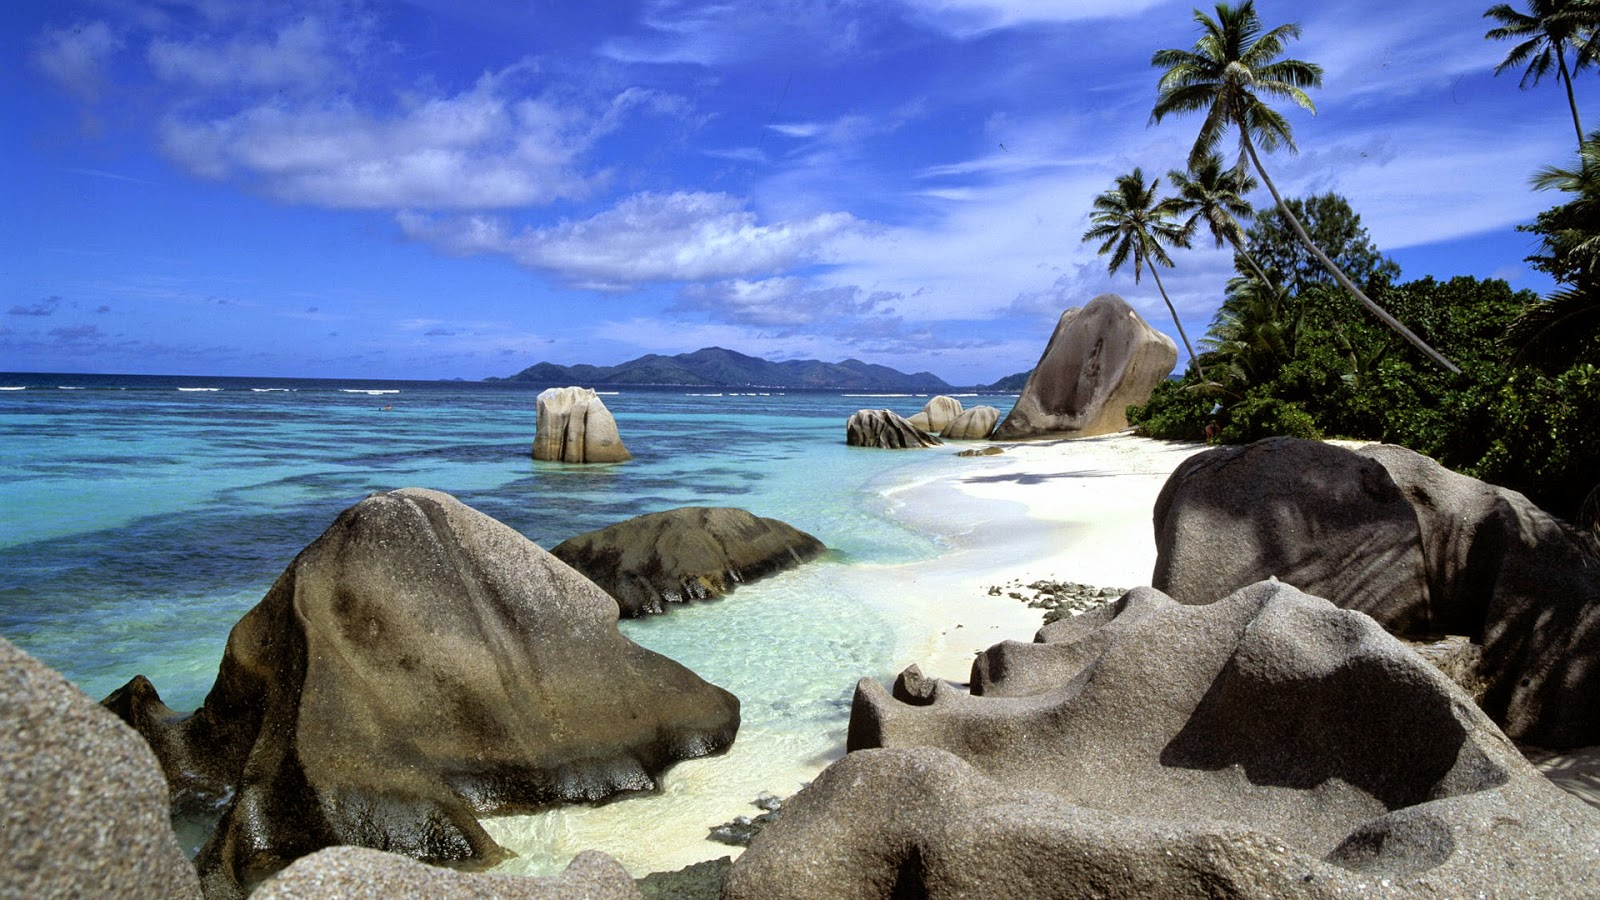 rocks-on-beach-sea-with-cocunut-tree-photo-image-free-download.jpg